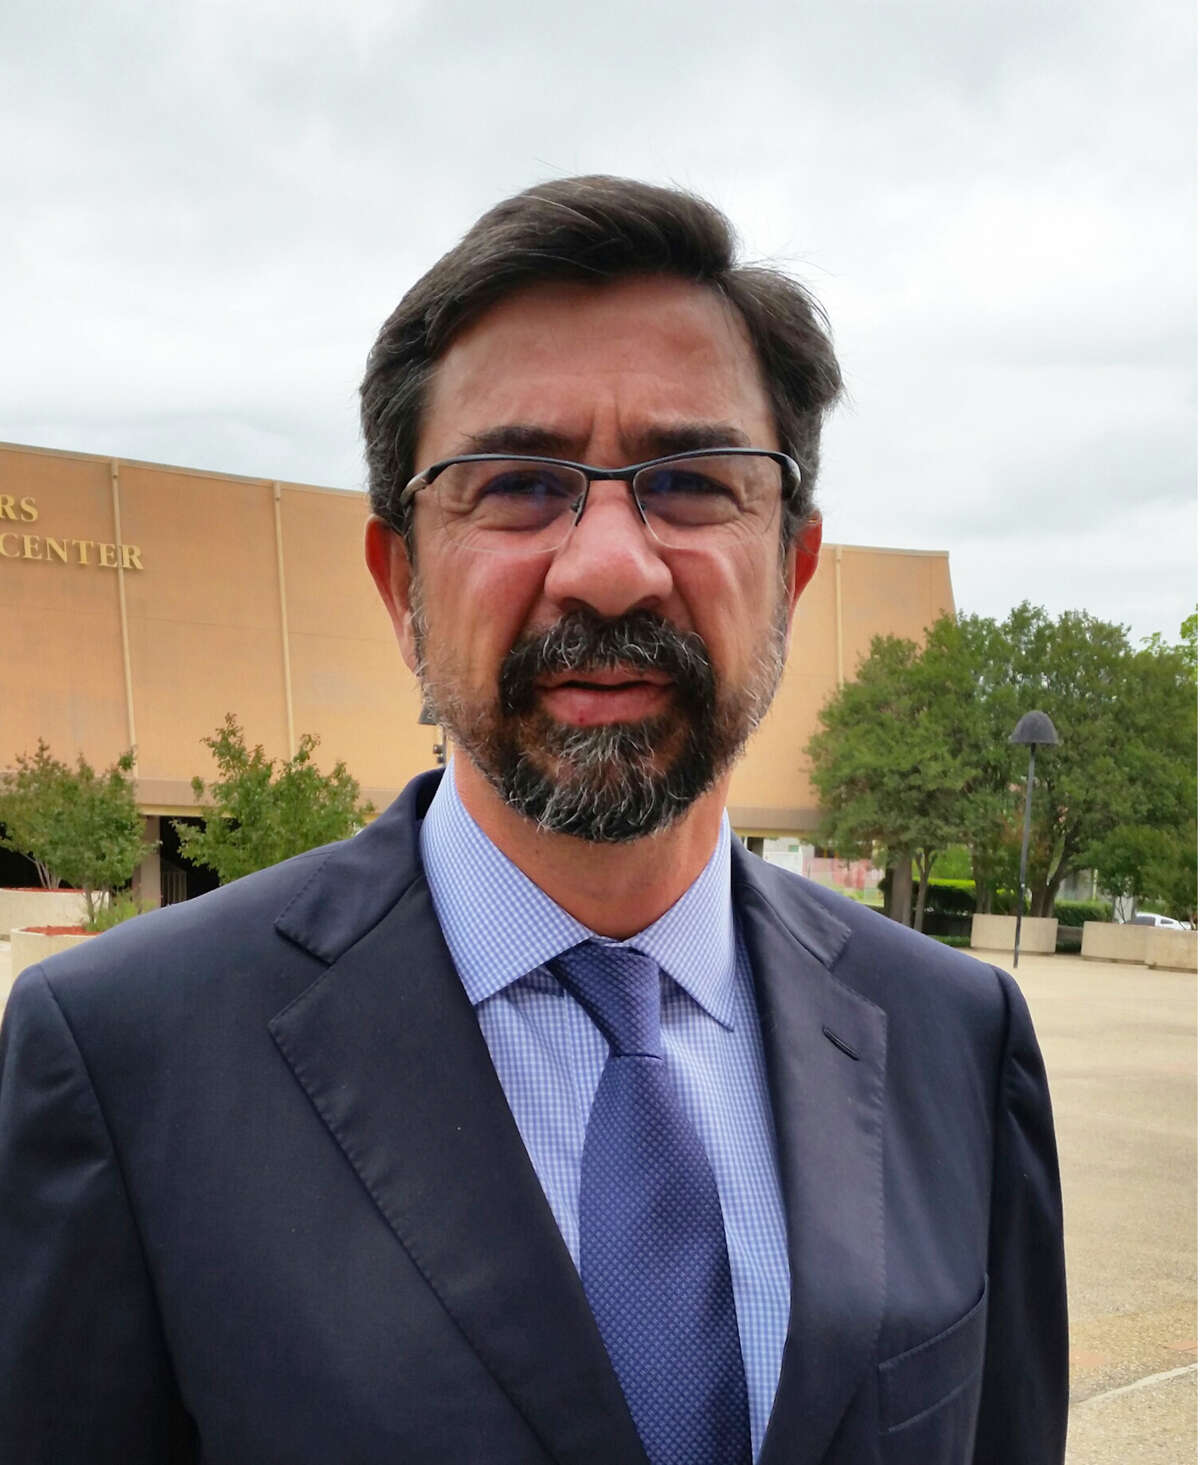 Alberto Berlanga Bolado, former secretary of Transportation for Tamaulipas from 2005 to 2010, speaks Wednesday, April 22, 2015 outside the federal courthouse in San Antonio after a judge allowed him to try to sell a 46-acre tract of premium land in La Cantera that the feds claim was acquired with laundered money tied to ex-Tamaulipas governor Tomas Yarrington.